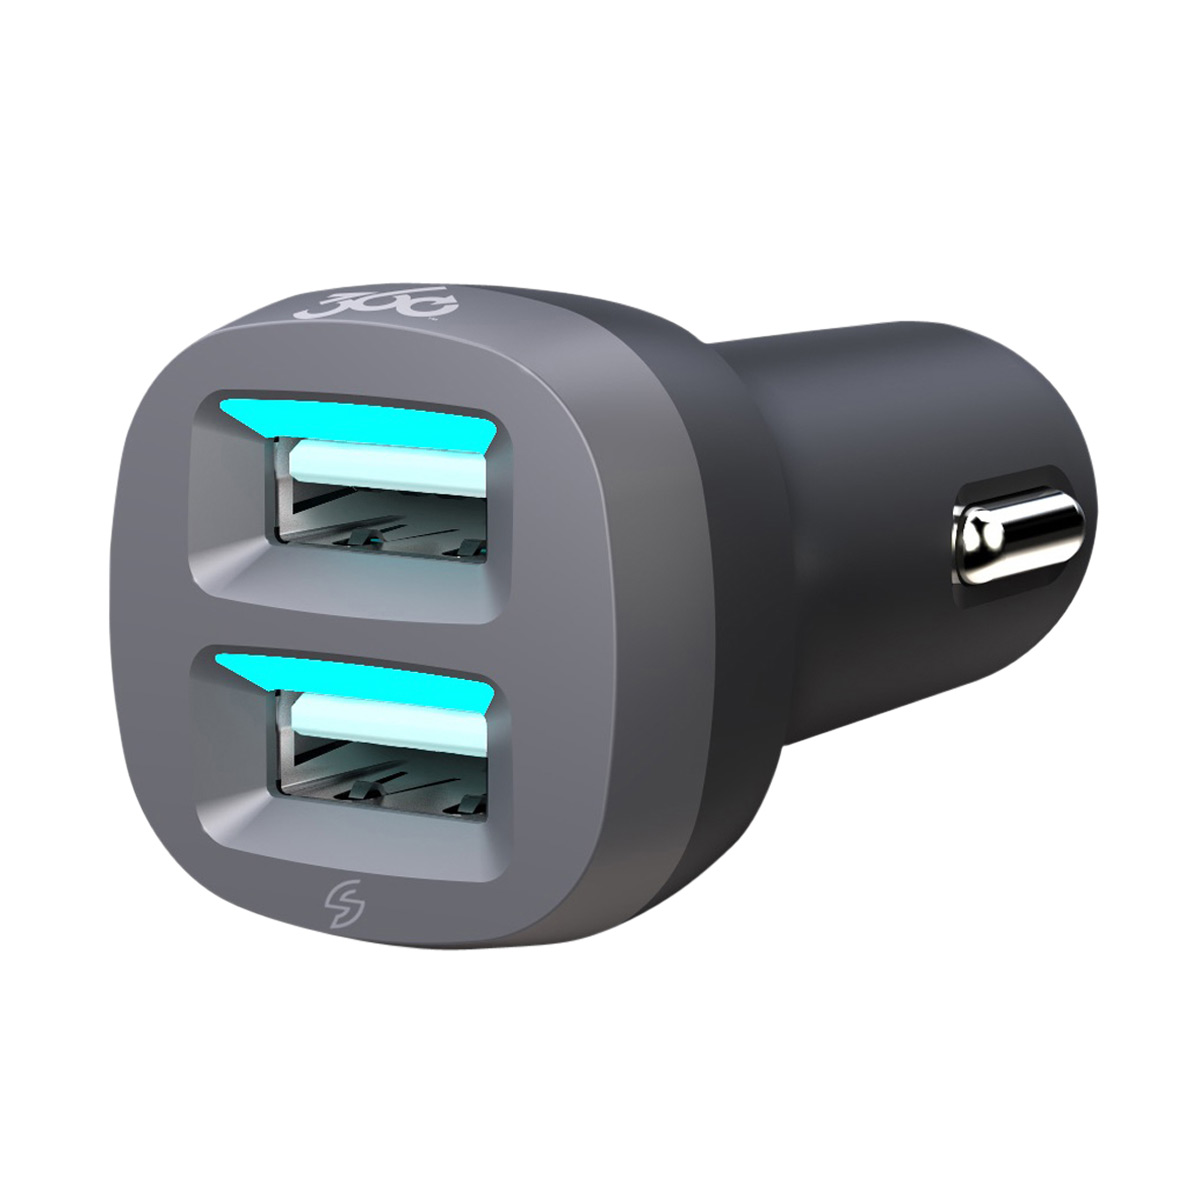 VividDrive 4.8 Dual 2-Port USB Car Charger